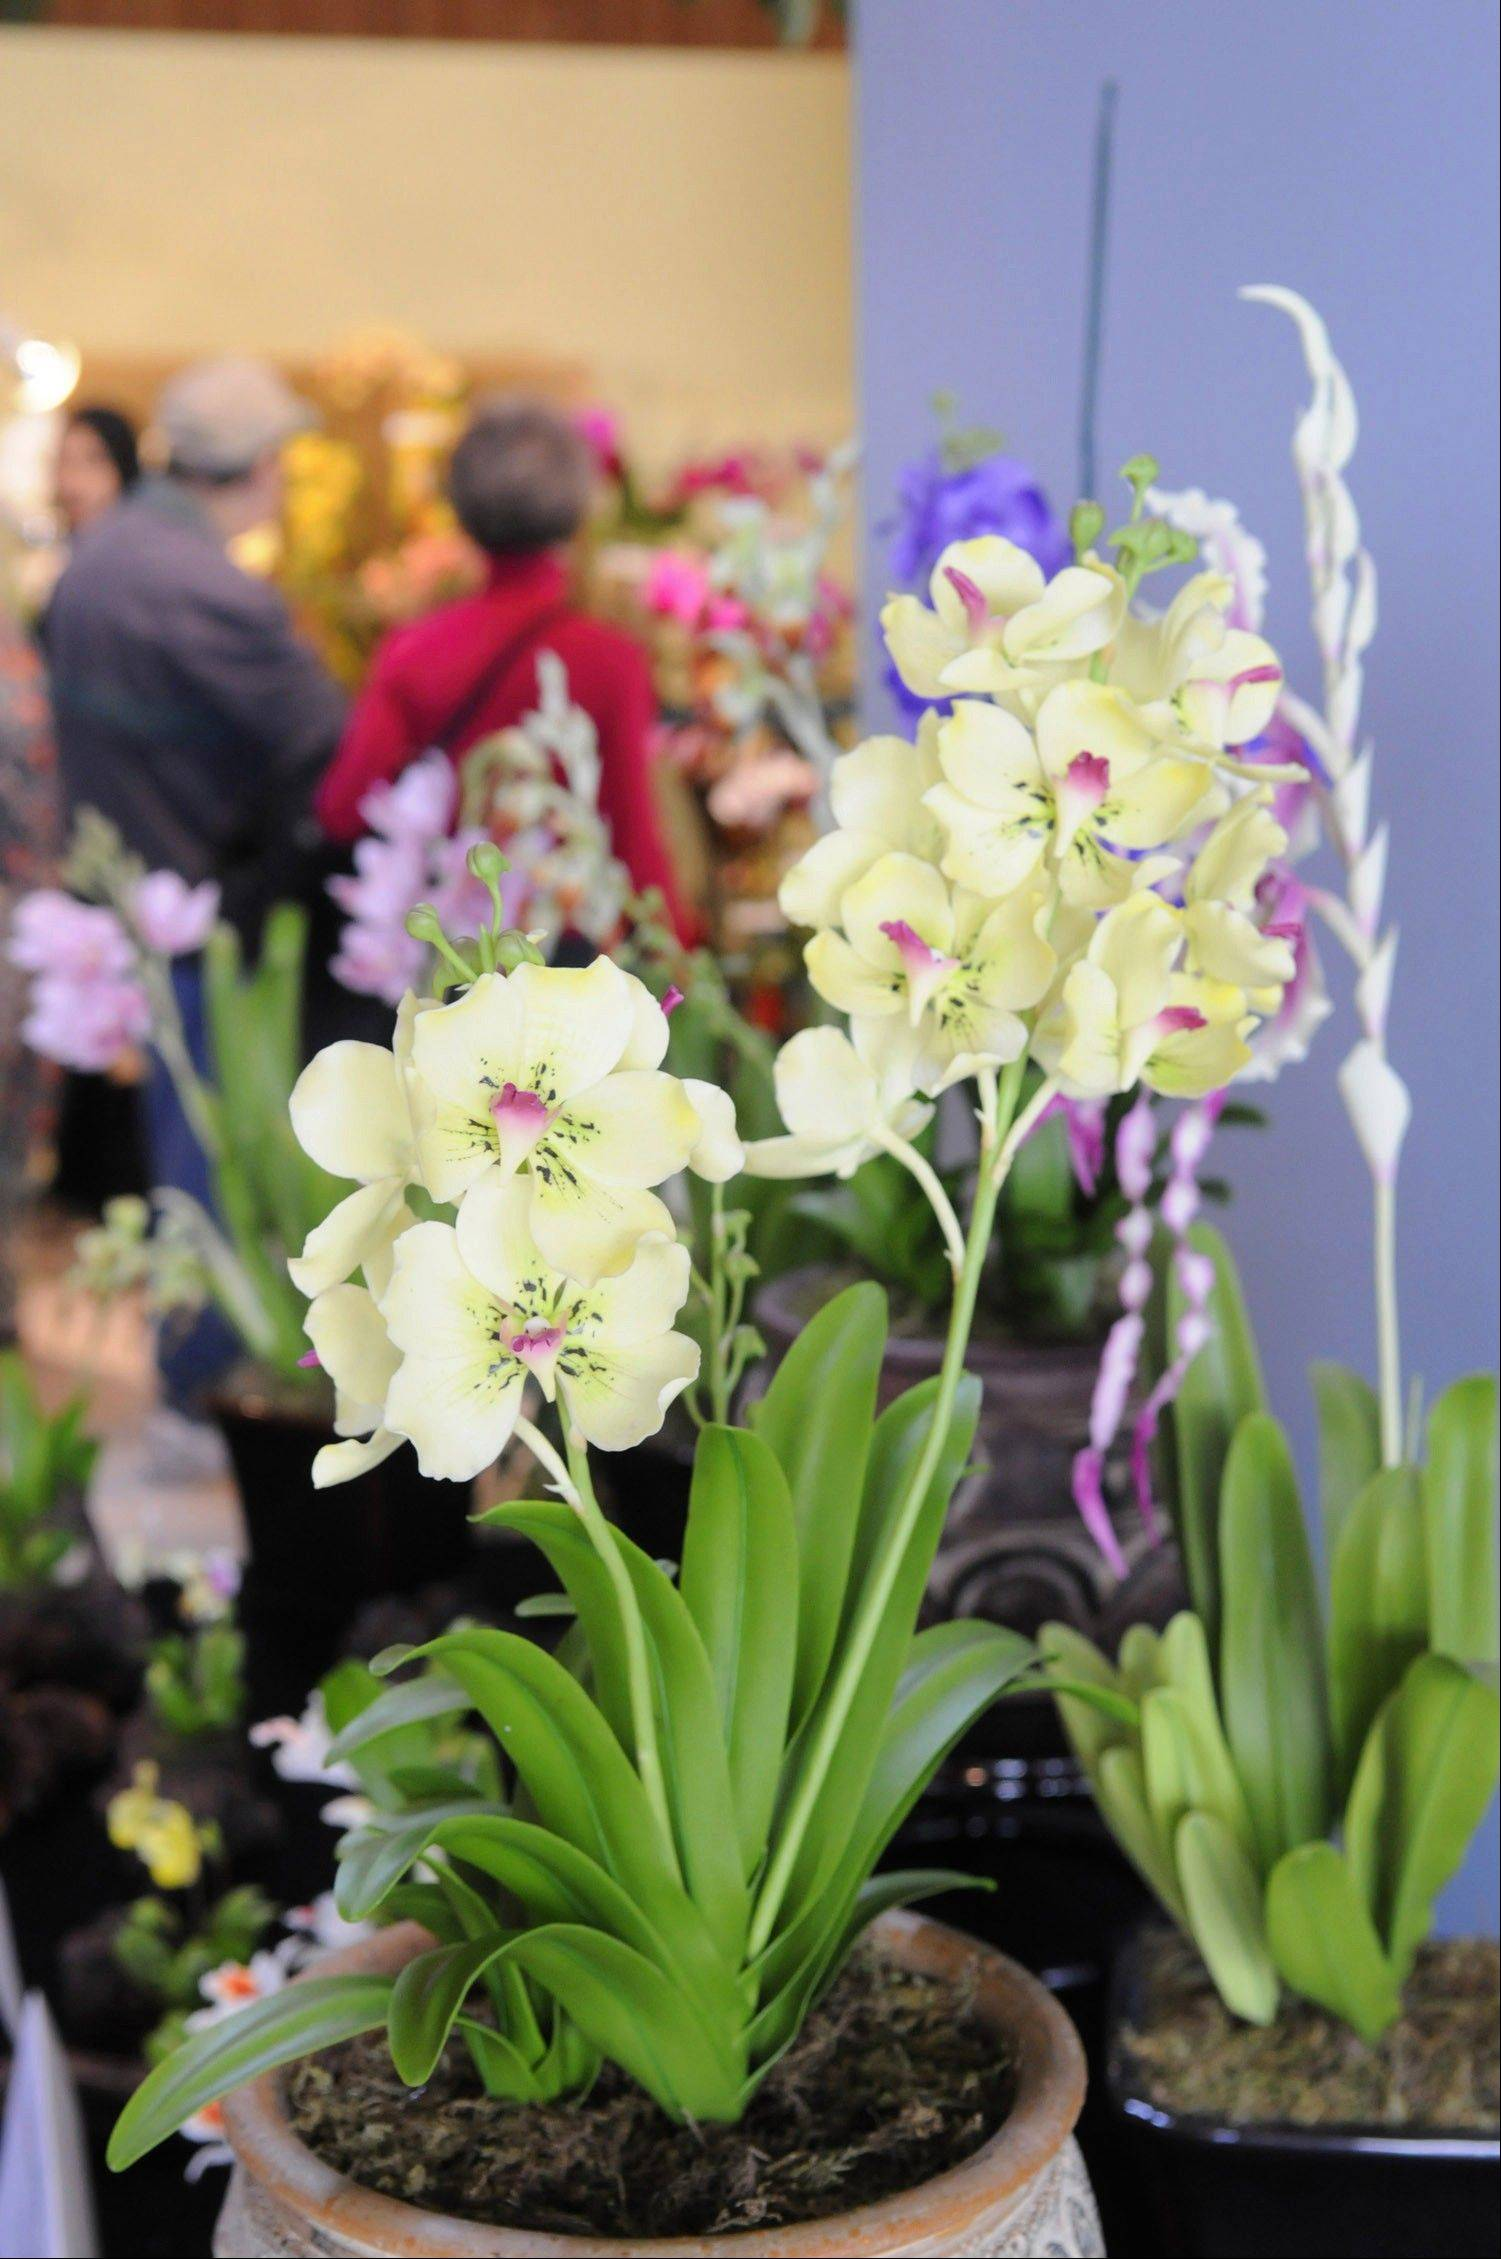 "The Illinois Orchid Society presents their 60th anniversary show called ""Celebrate Orchids"" at the Chicago Botanic Garden in Glencoe on Saturday and Sunday, April 28-29."